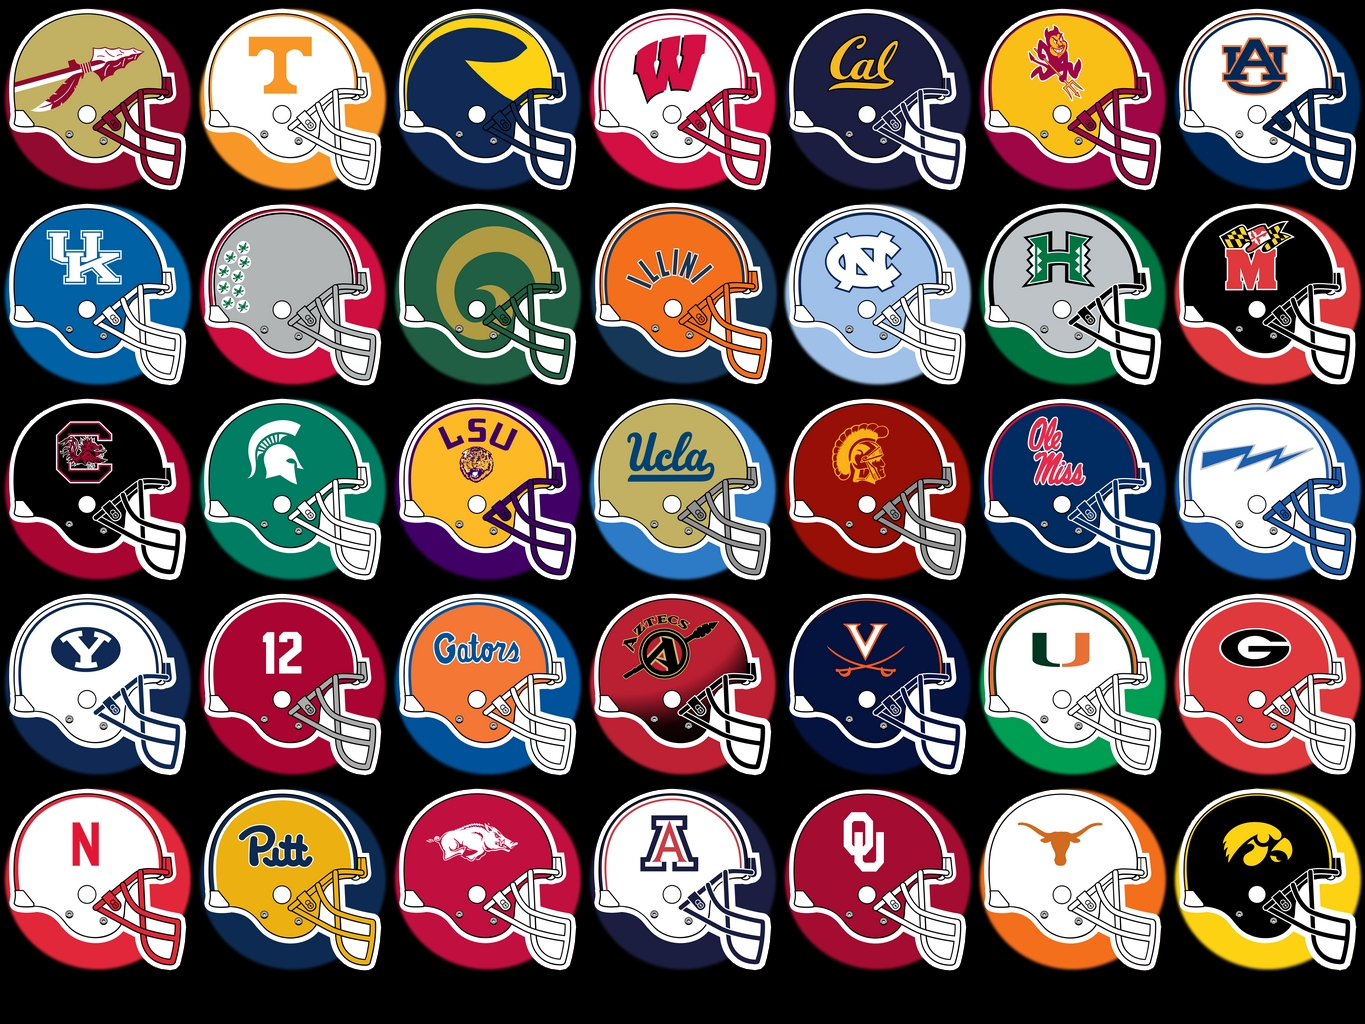 ncaa football schedules division 1 football mascots